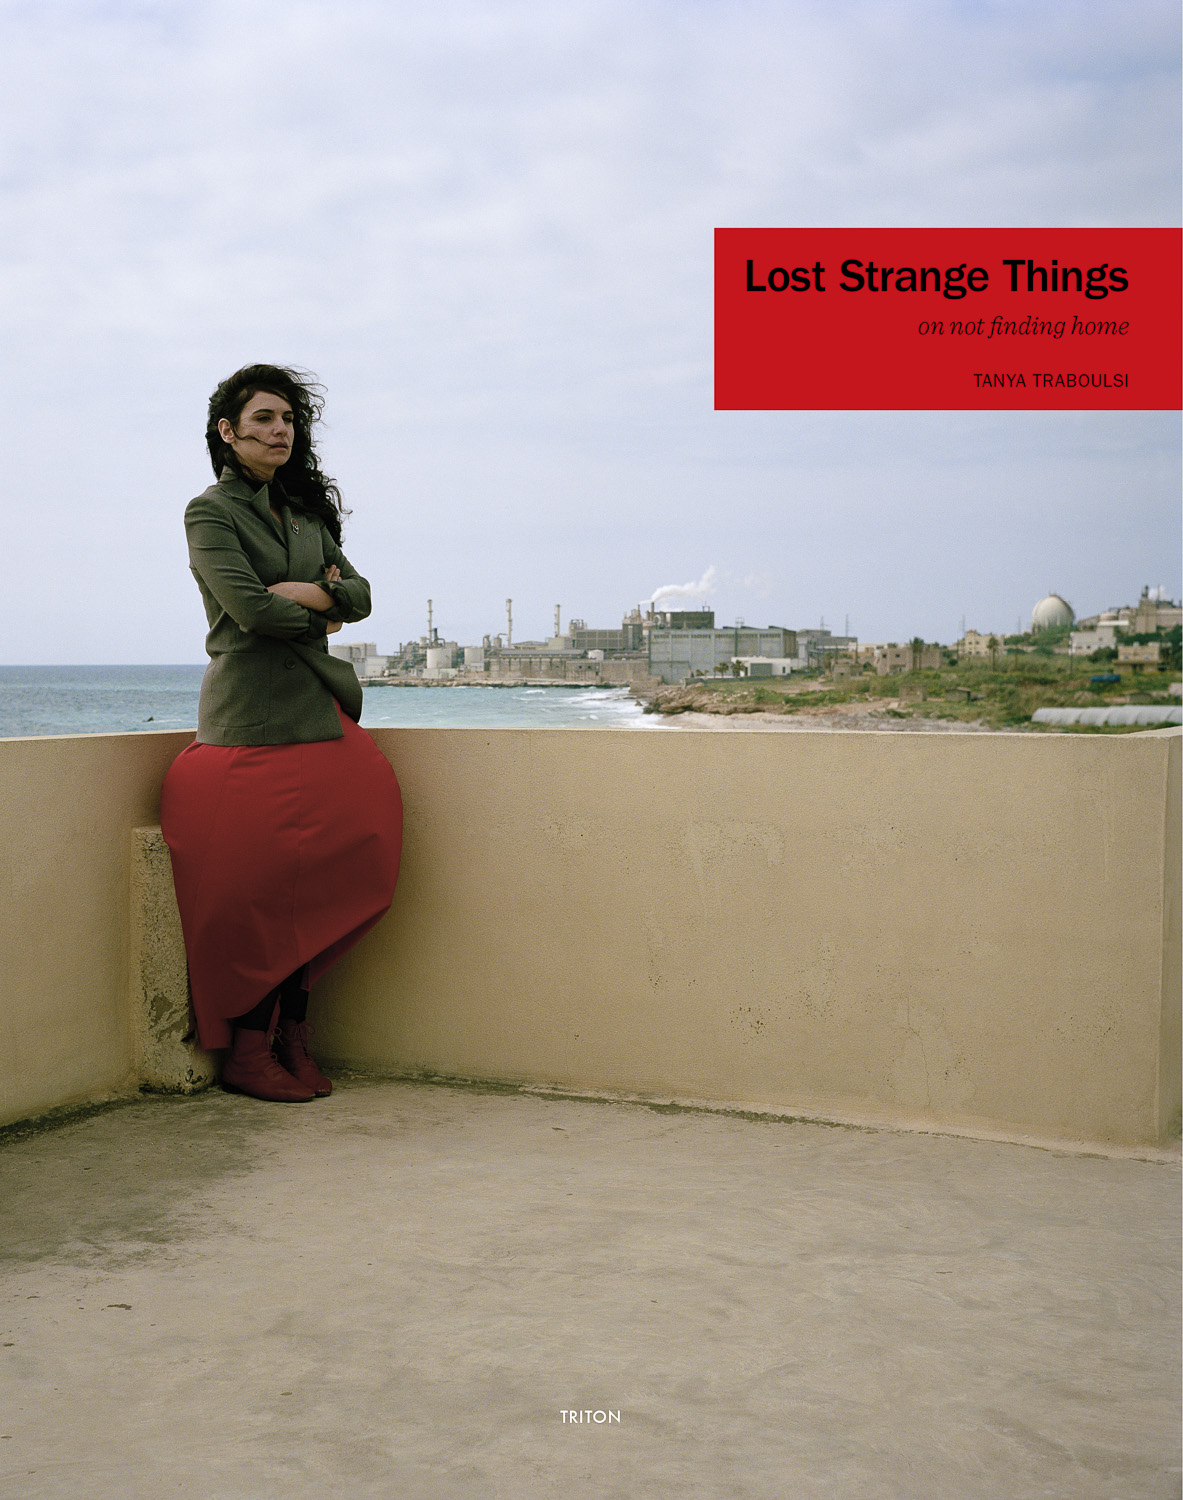 Lost Strange Things: On not finding home  Book   Lost Strange Things: On not finding home  is a monograph with images from the photographic series of the same title.The book assembles 116 photographs, many family photos and documents culled from the artist's personal collection and texts by Rayya Badran, Bariaa Mourad and Najla Said.  208 pages,20.5 x 26cm CMYK (full color) recto verso Exposed binding 300g Fabriano Offset soft cover 140g Fabriano Offset inside pages Published by  Triton in 2014 Designed by  Studio Safar  Edition of 500 Artist Edition of 10 + III AP  ISBN 978-84-943401-8-5  Permanent collections: Albertina, Vienna University of Applied Arts, Vienna Galleria Nazionale d'Arte Moderna, Rome The National Museum of XXI Century Arts, Rome